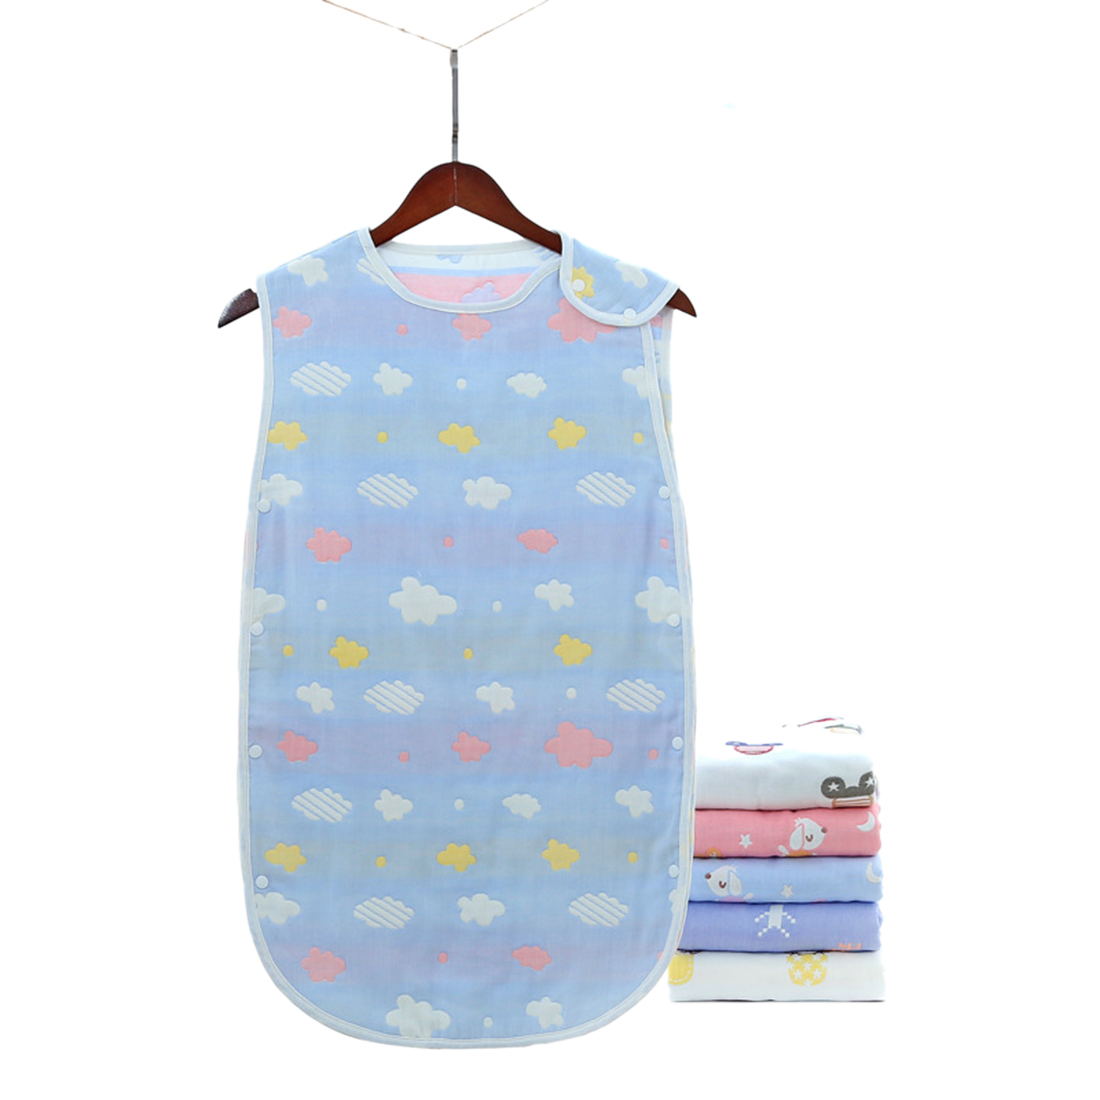 45 X 80cm Pure Cotton Vest-Style Anti-Kick Sleeping Bag For Baby Wrap Toddler Blanket Sleeping Bags - Clouds Blue/Clouds Pink